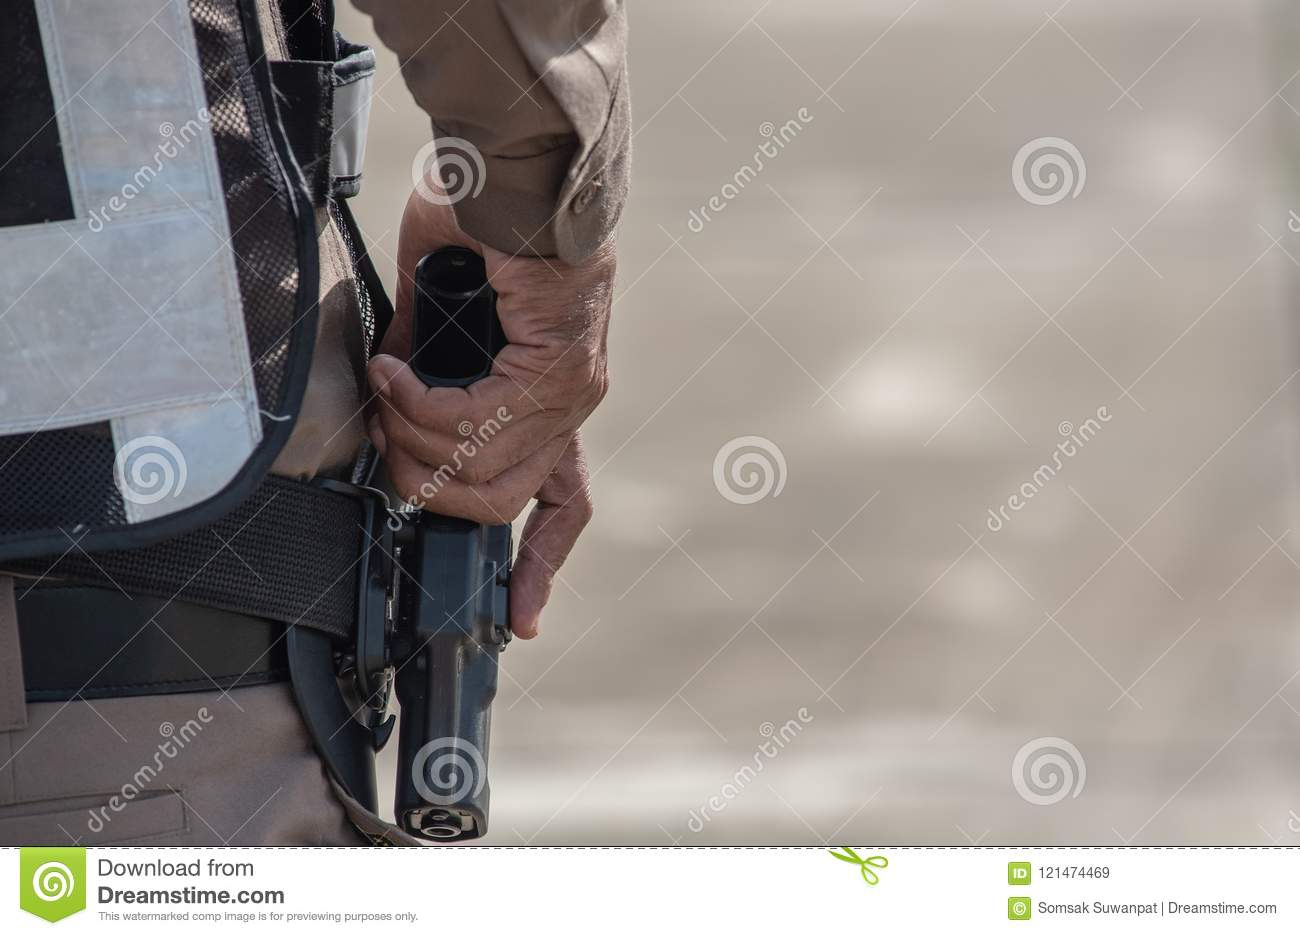 Police Tactical Firearms Training Stock Image - Image of academy